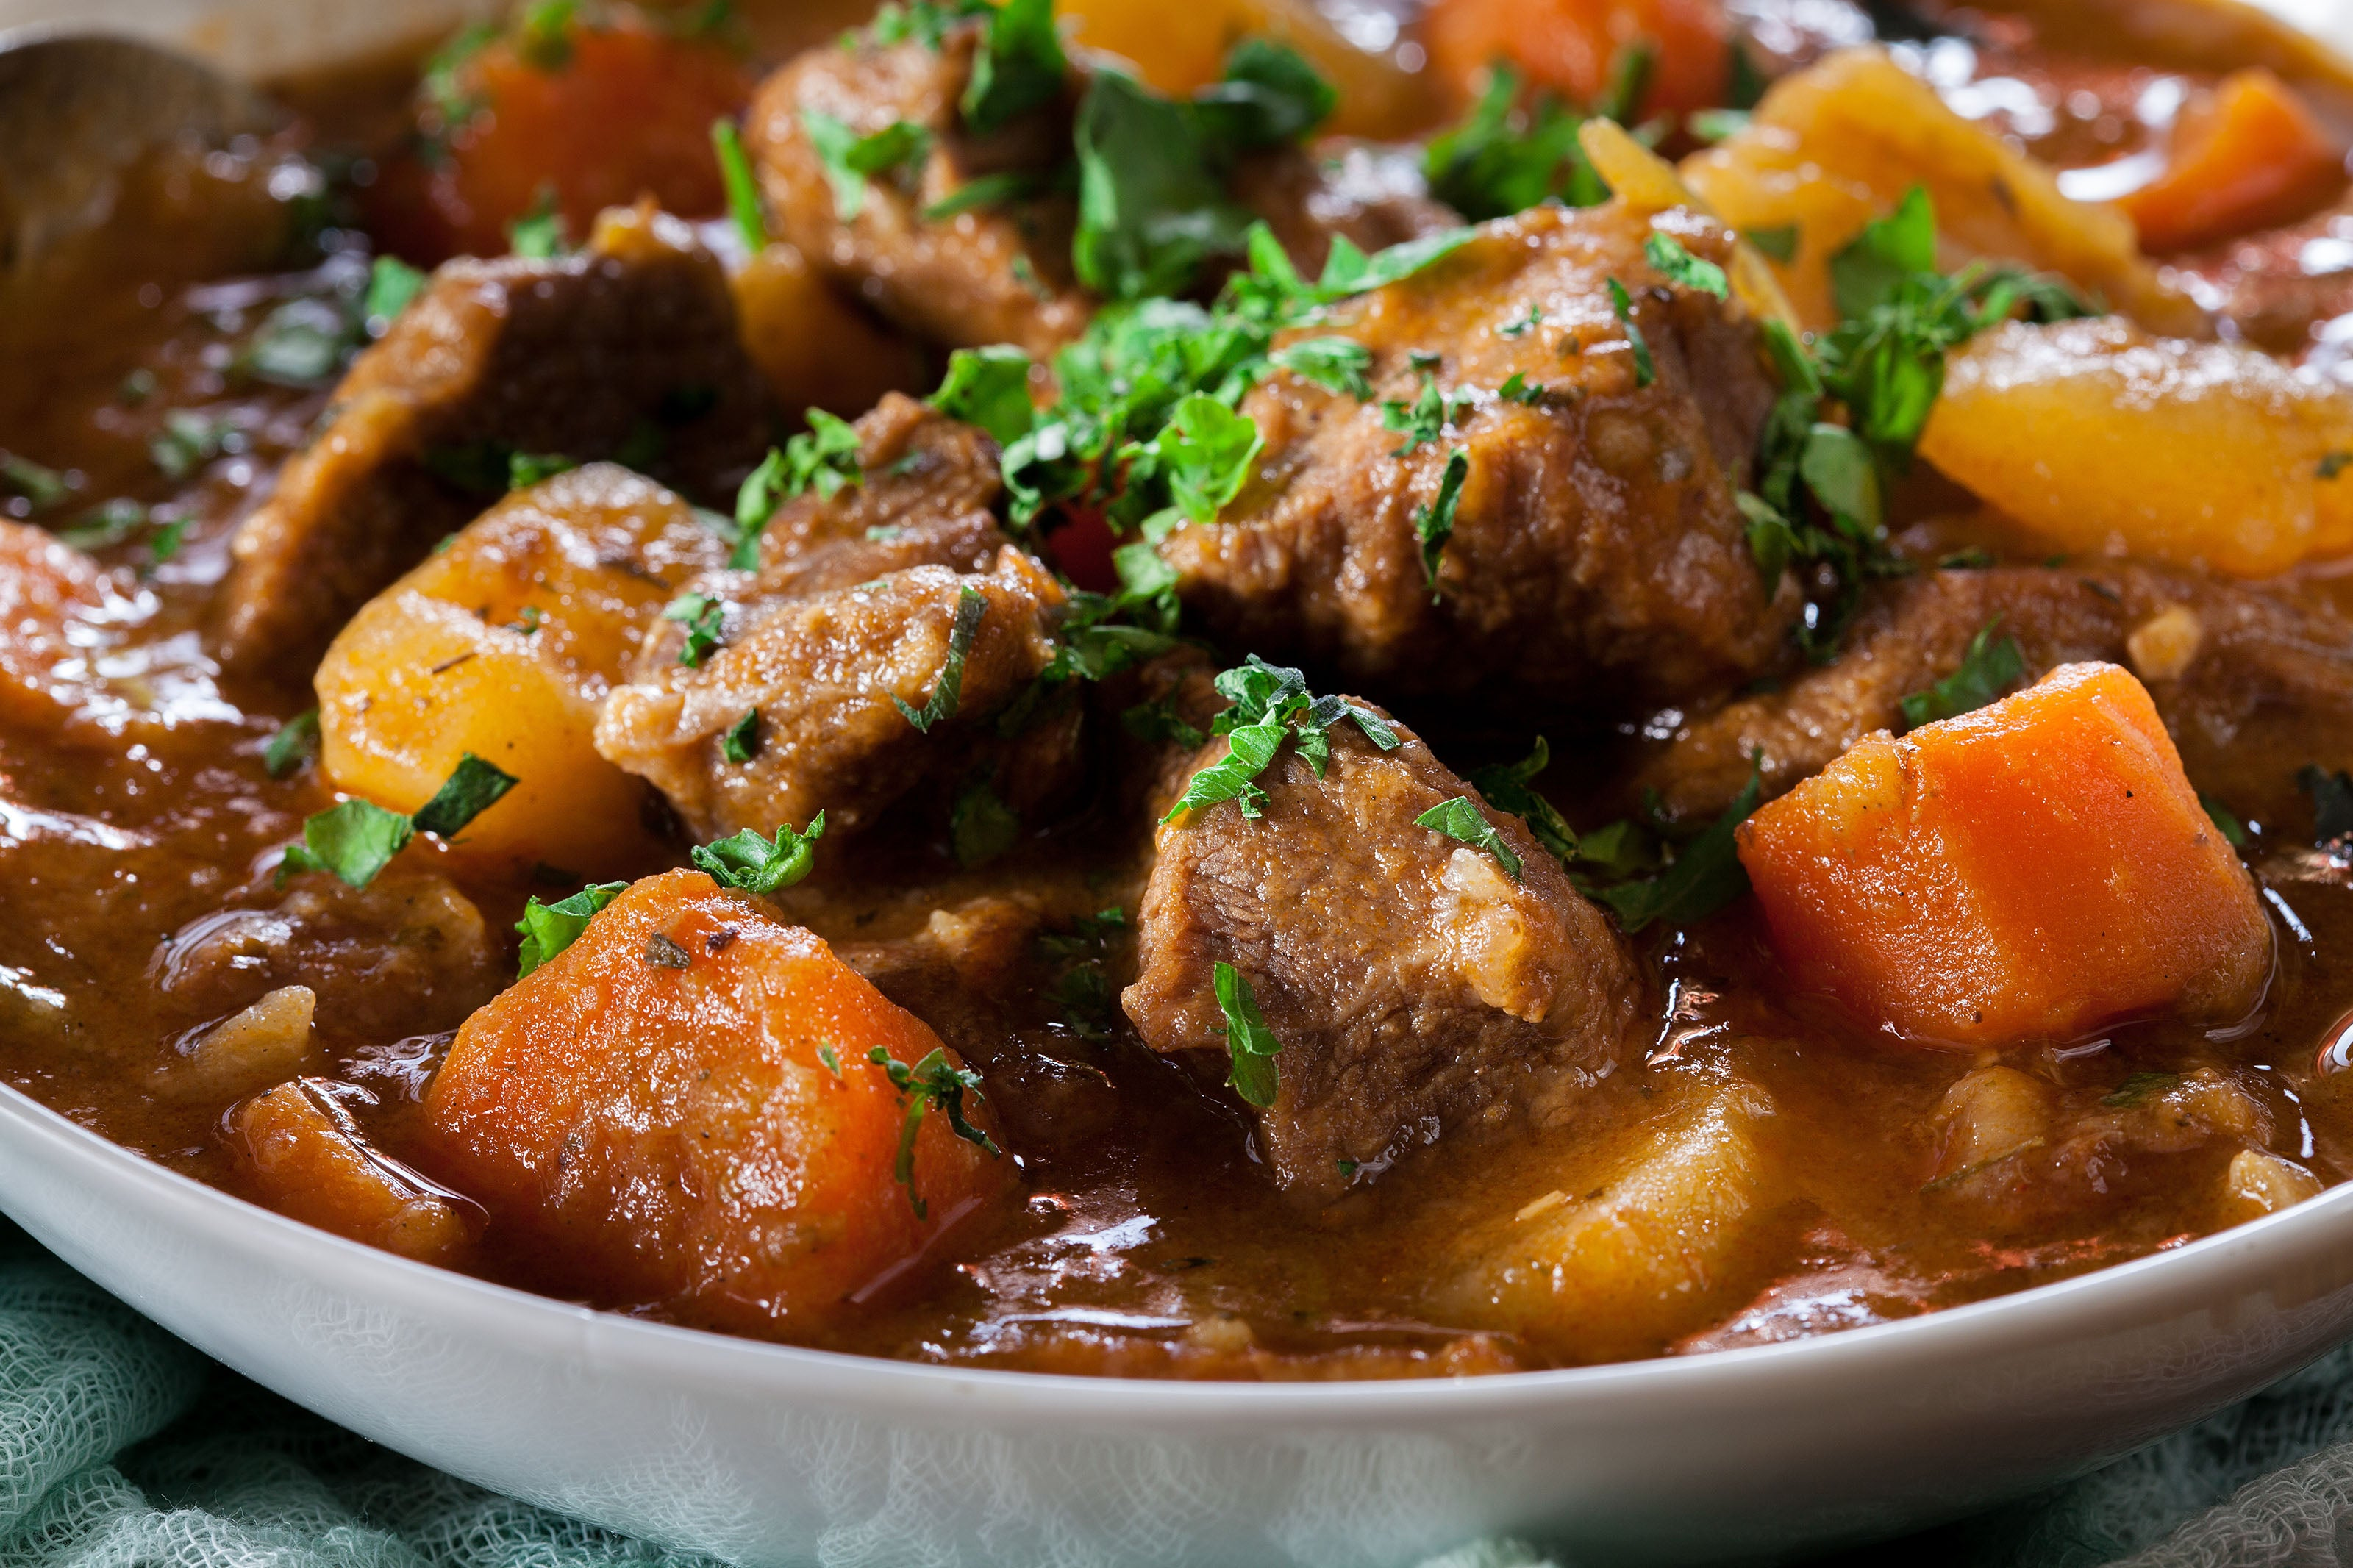 Kids Lamb Stew